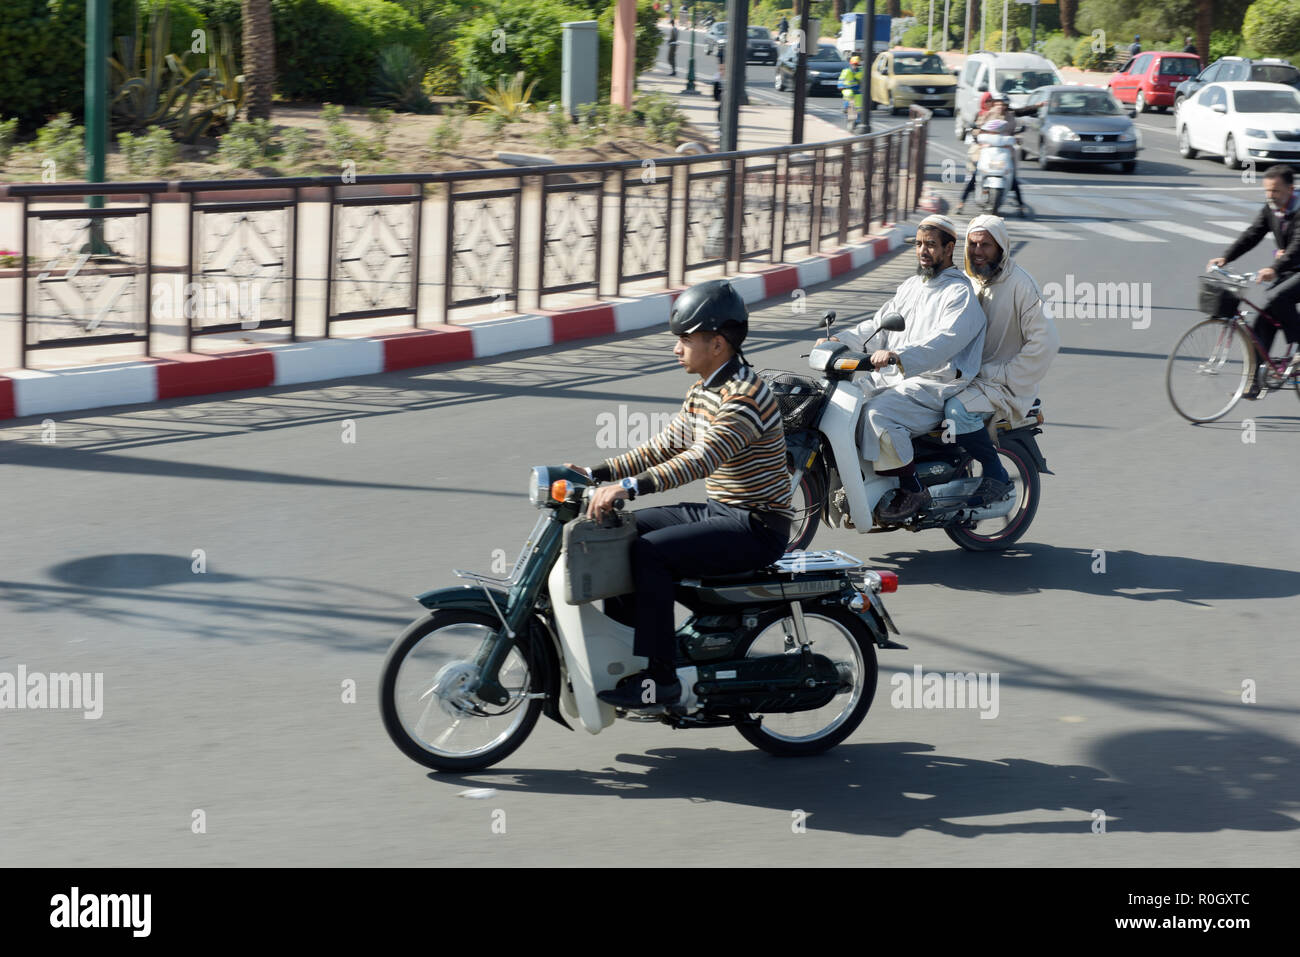 Mopeds in Traffic in Marrakech Morocco - Stock Image